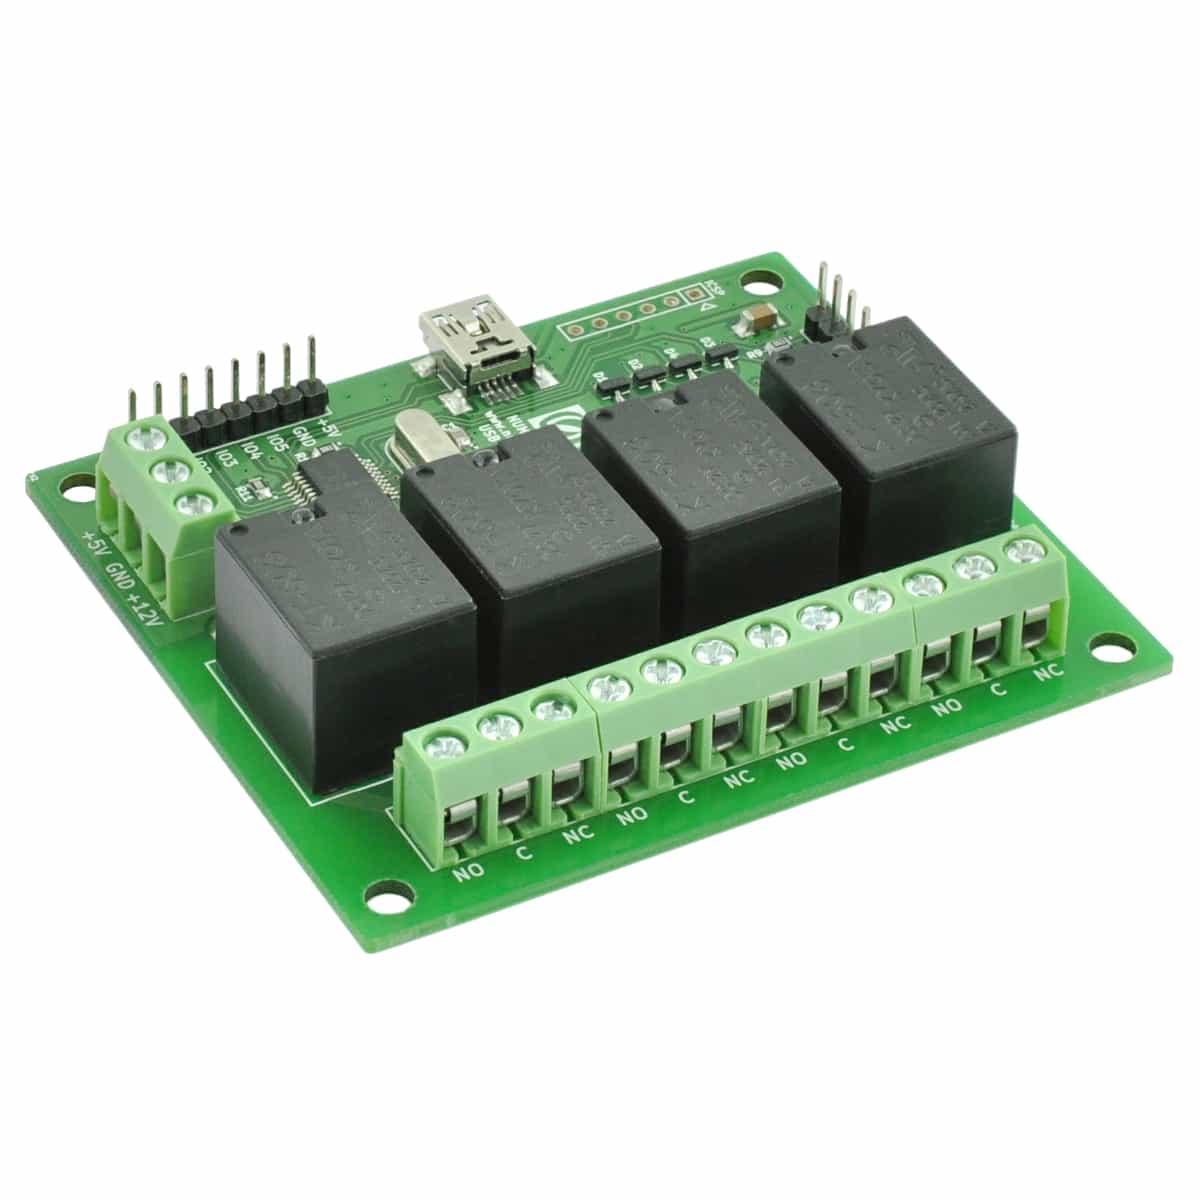 Uzkce together with Channelusbssr besides Px Relais Finder A Webm moreover Ssr Module Board Channels besides Authorisation Eng. on solid state relay board